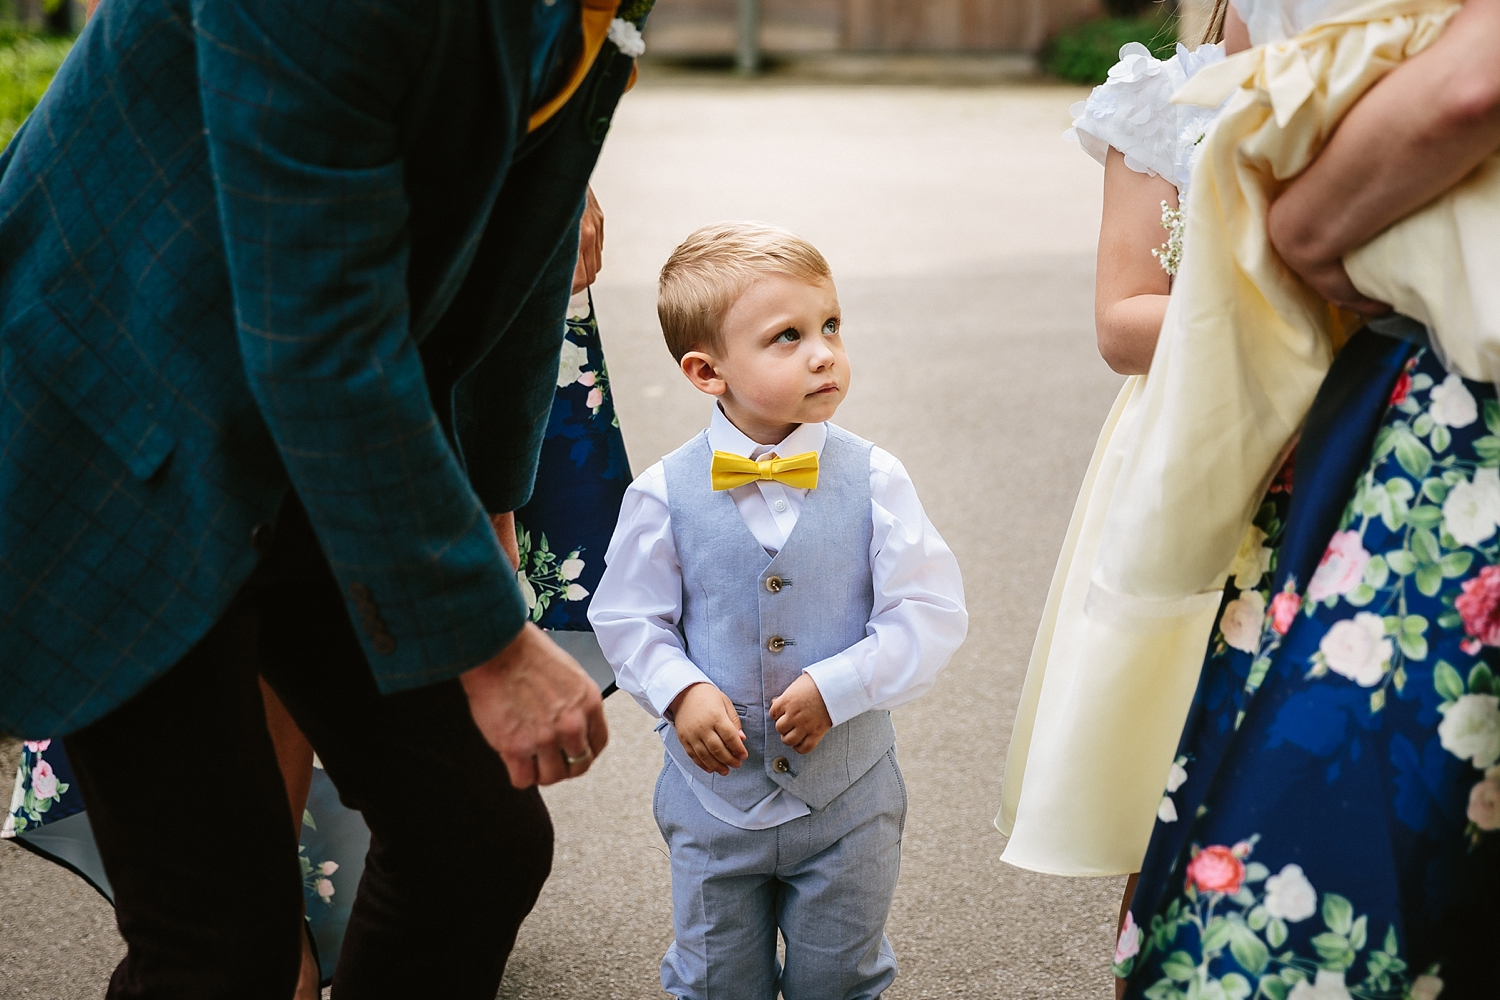 Natlie-Matthew-yorkshire-natural-relaxed-fun-documentary-reportage-candid-wedding-photography-photographer-Derby-Nottingham-Derbyshire-Nottinghamshire-Leicestershire-Lincolnshire-East-Midlands-36.jpg